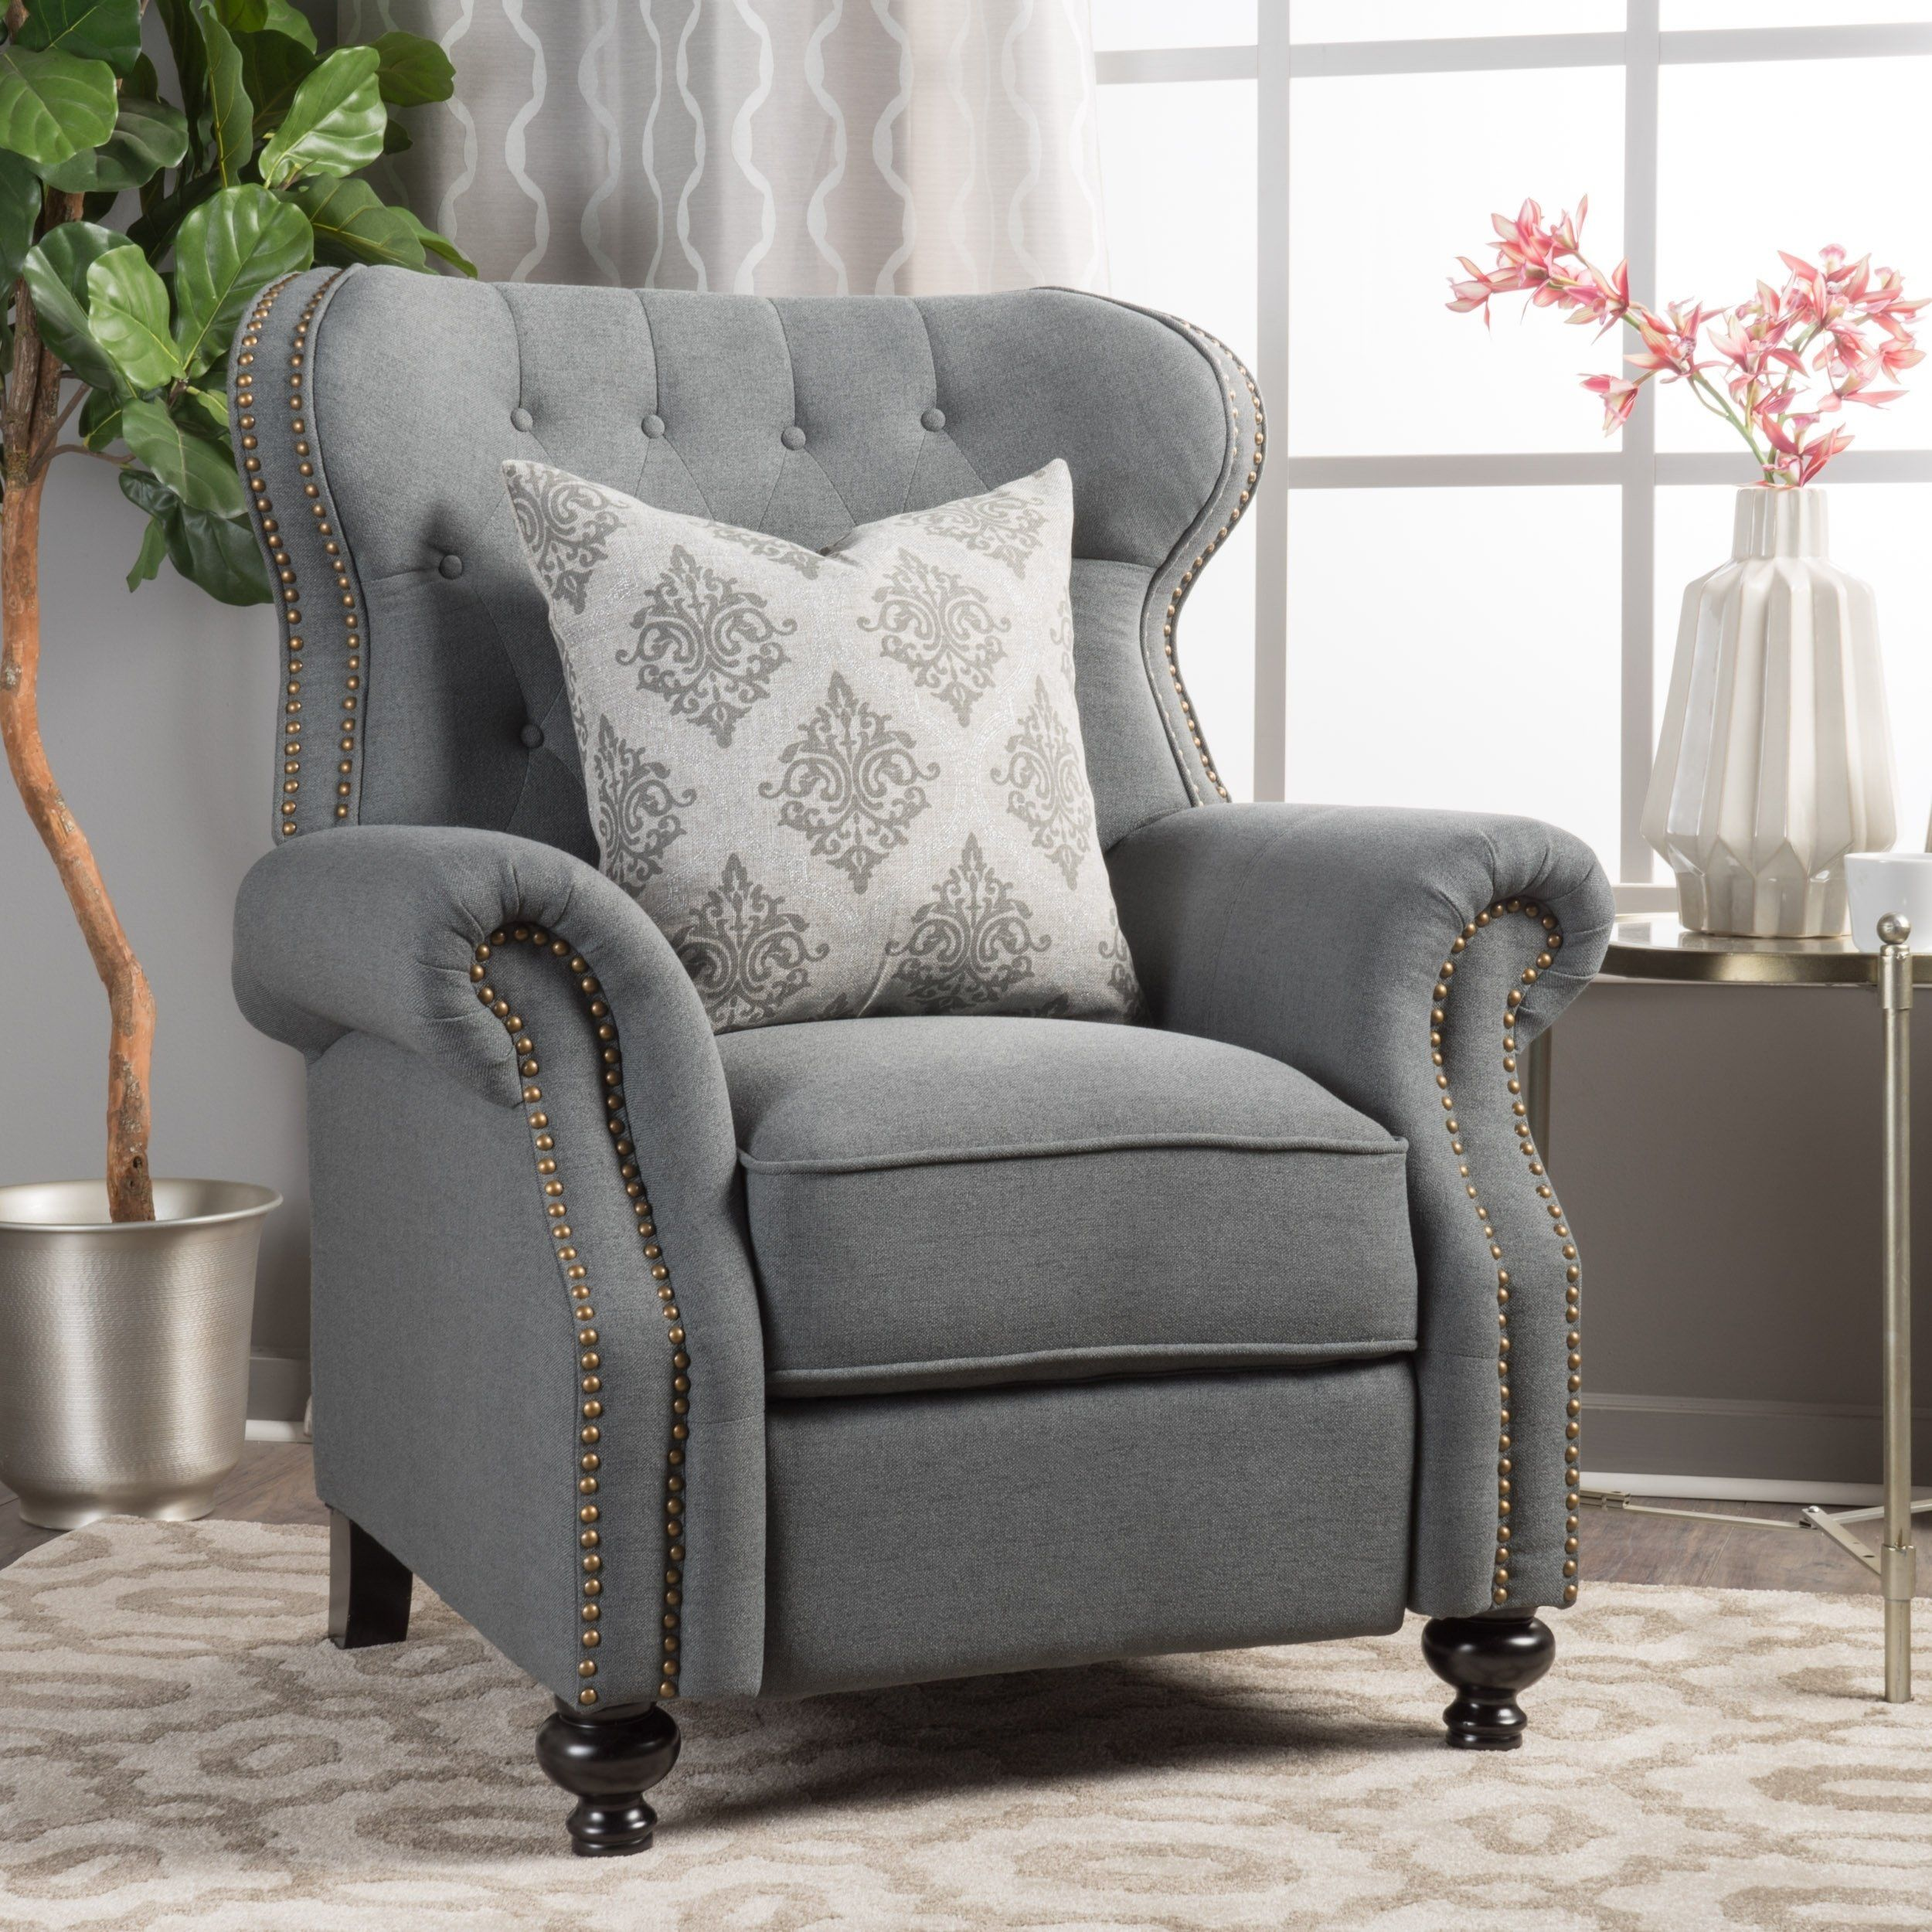 Upholstered Chairs Reclining Armchair, Club Chair Recliner Fabric